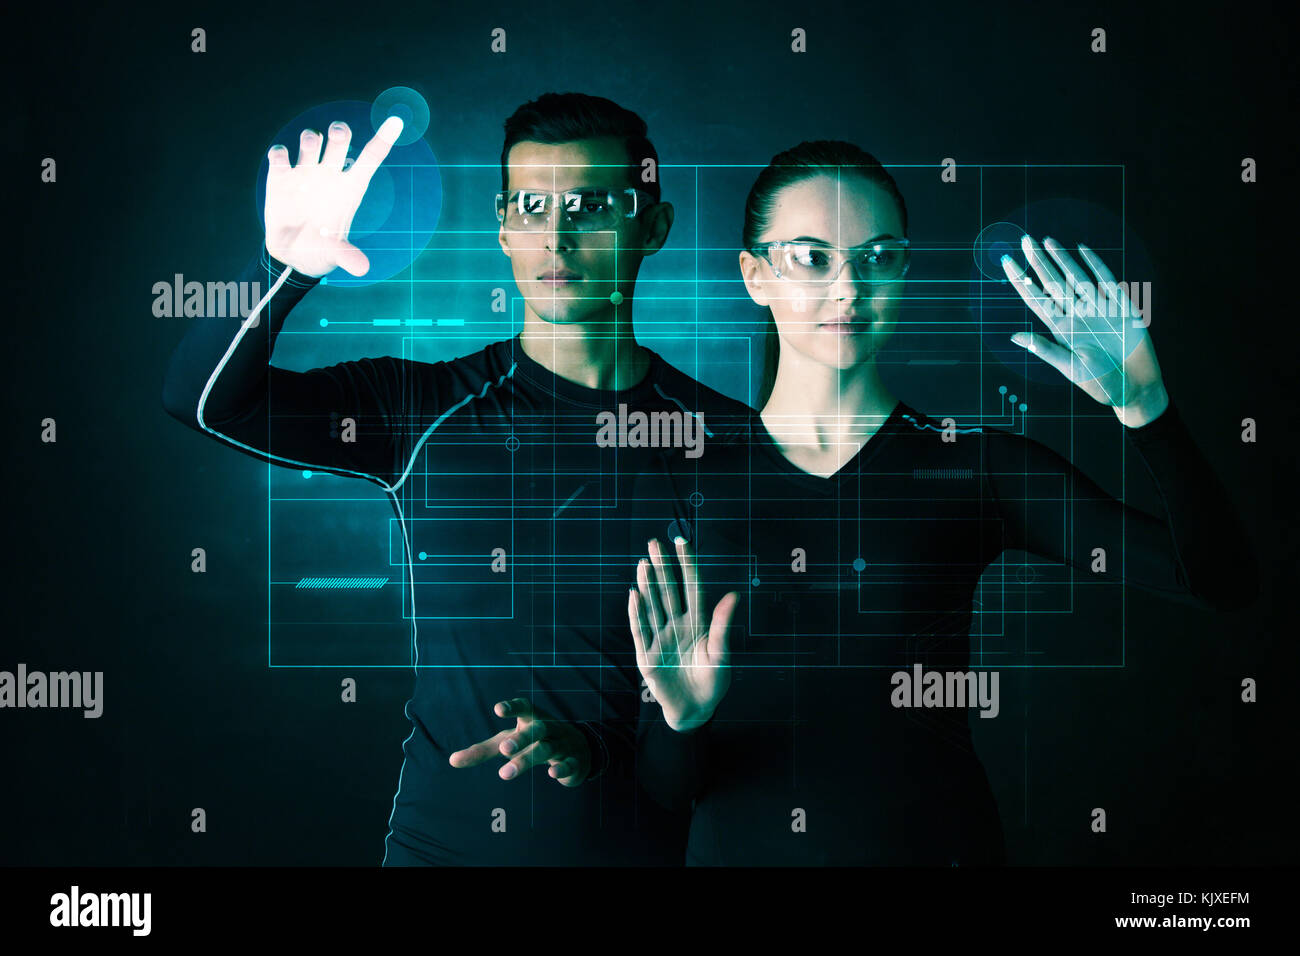 Couple working with futuristic display, innovation, future concept, abtract glowing outline - Stock Image